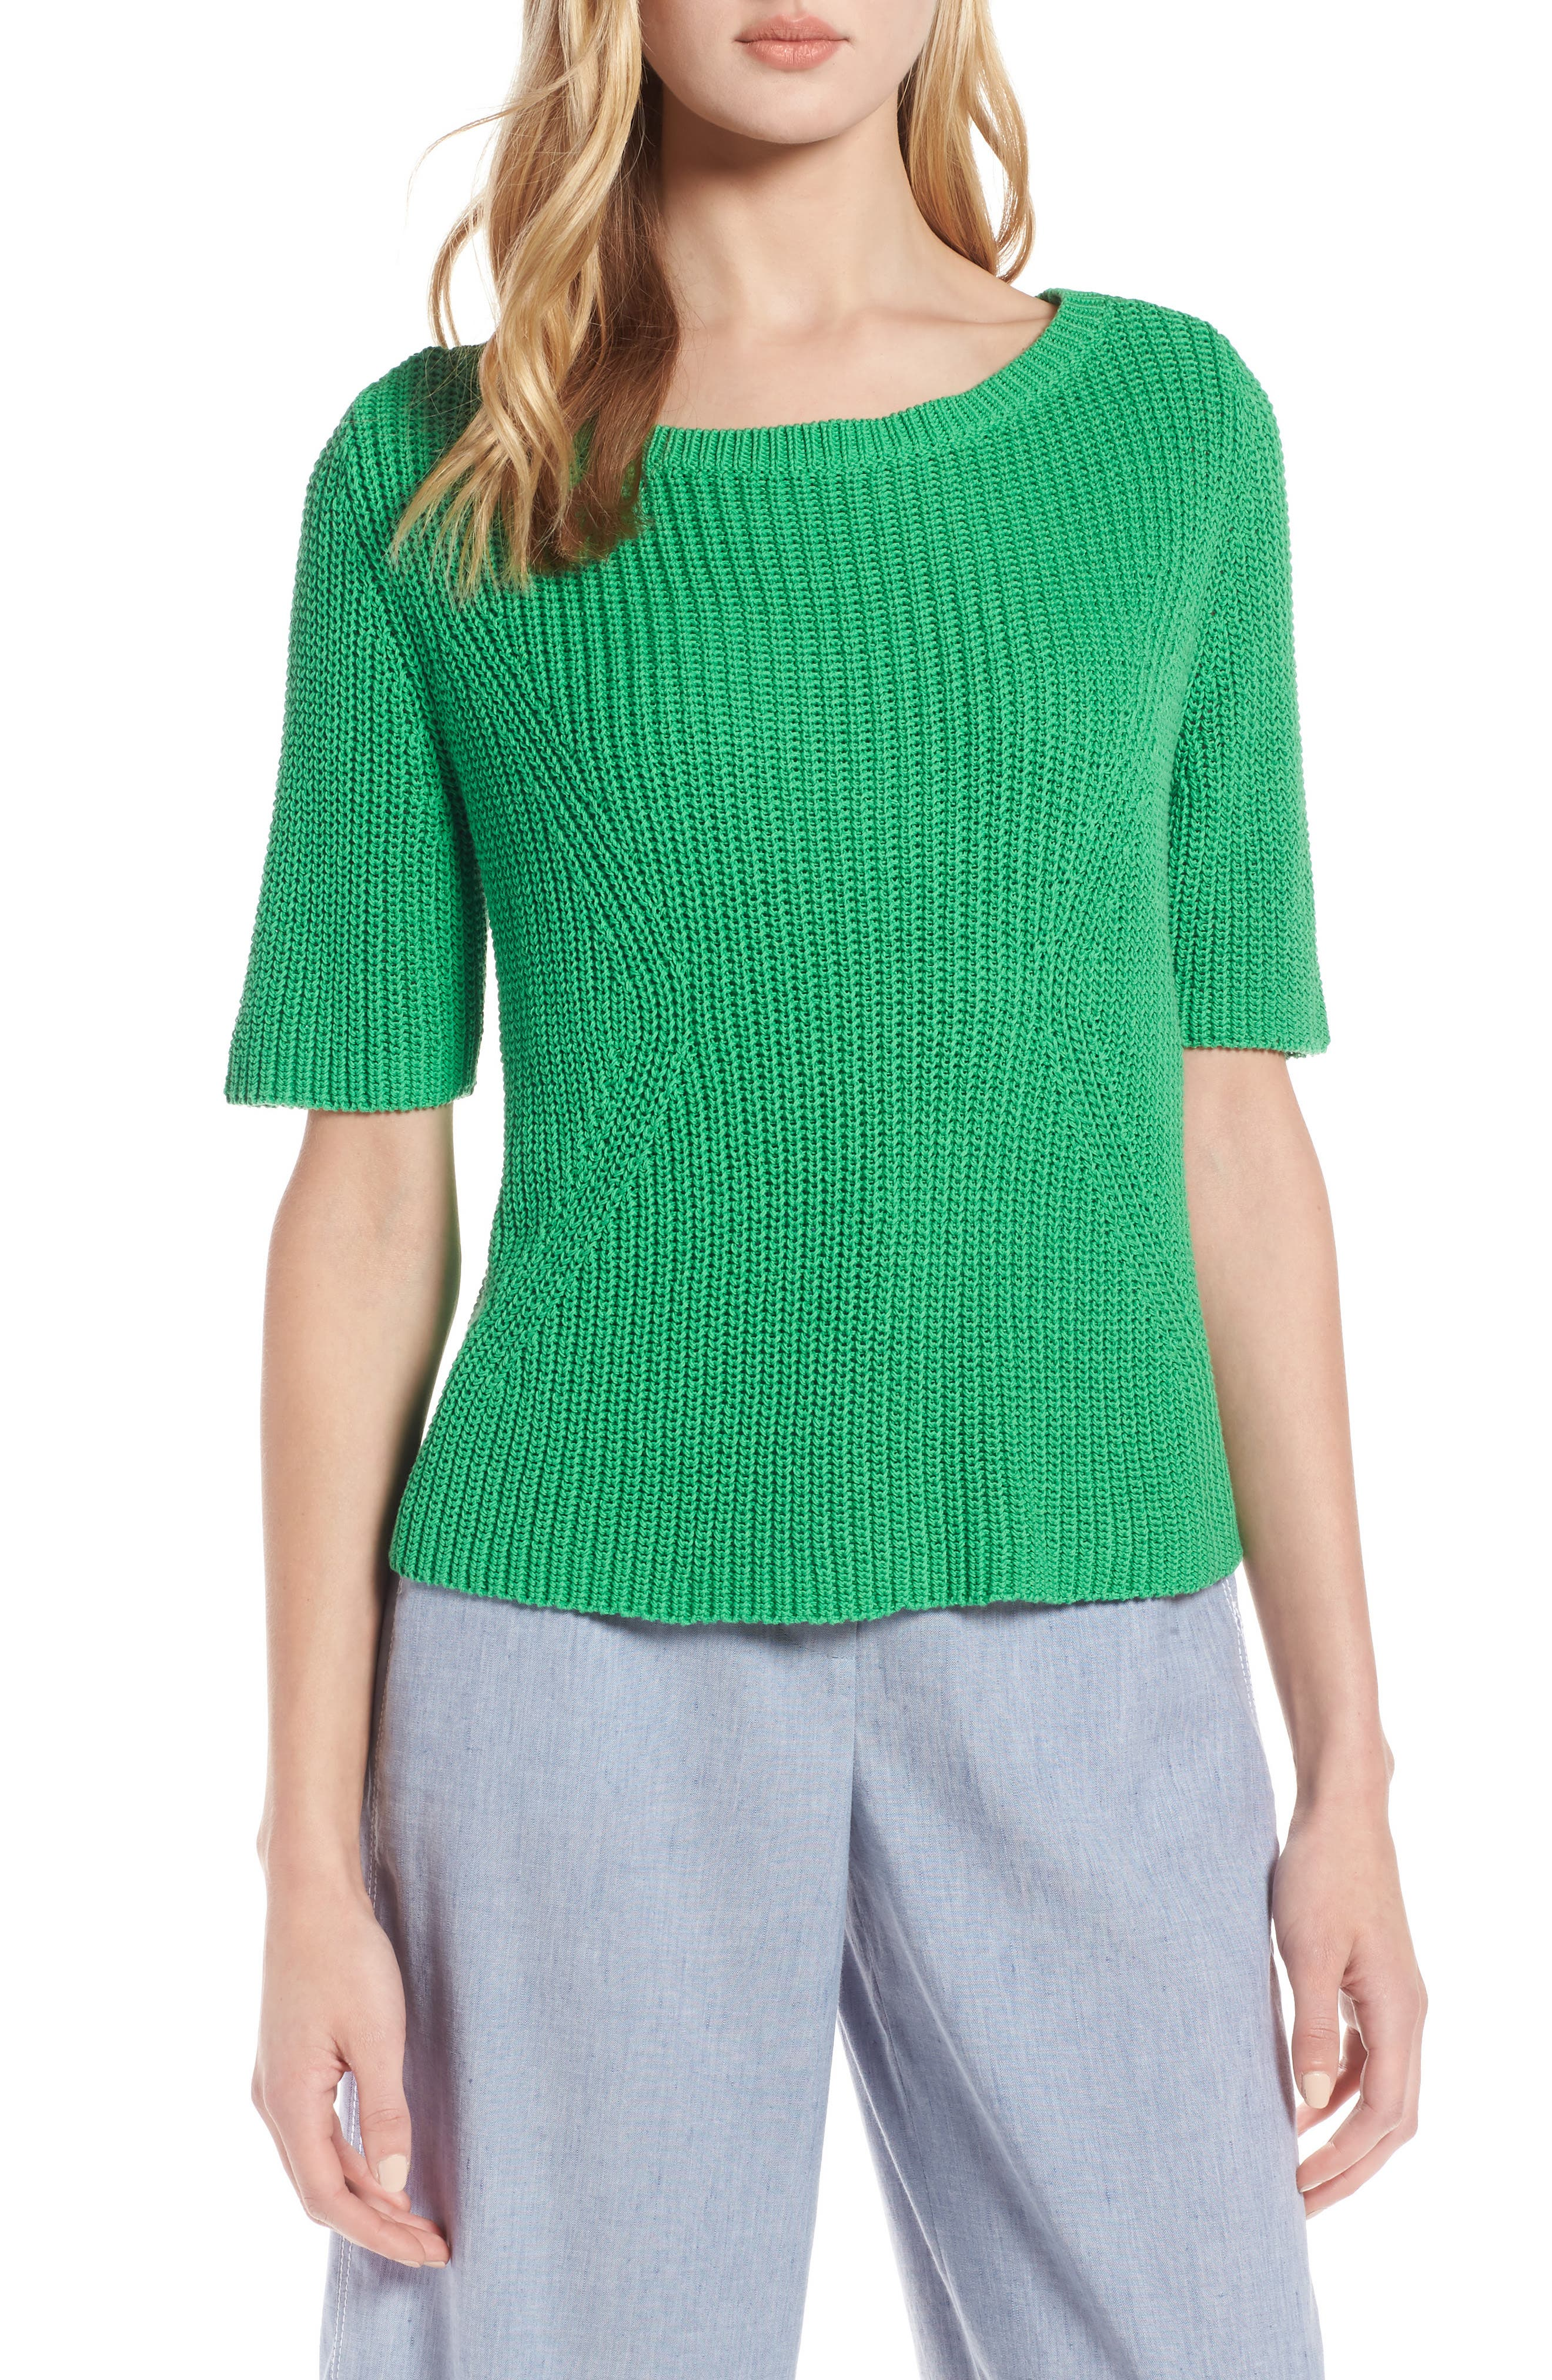 Shaker Stitch Cotton Sweater,                         Main,                         color, Green Kelly